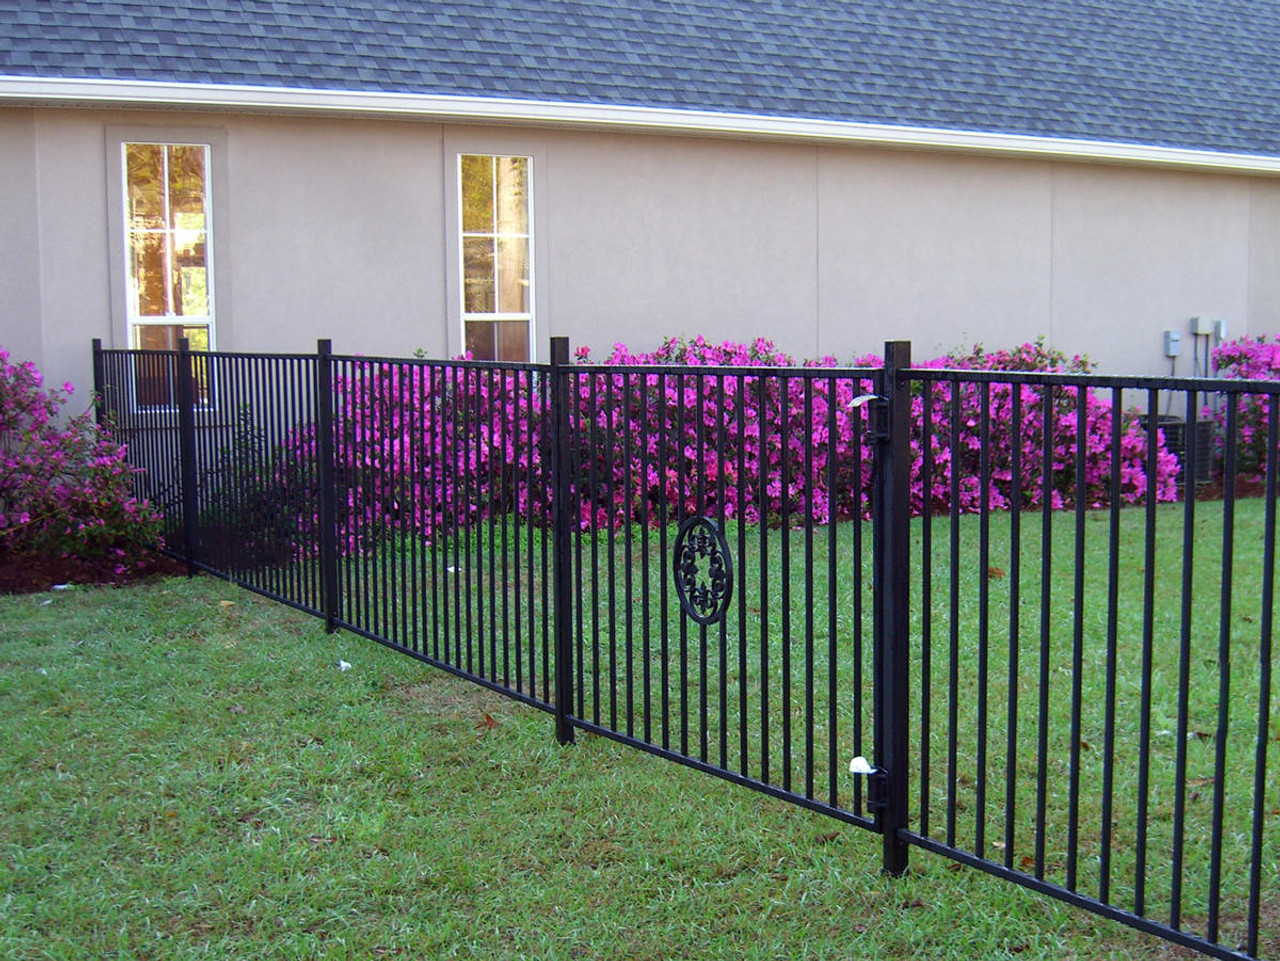 Ornamental Fence Posts Installed with the I2-850 OZ-Post Post Anchors